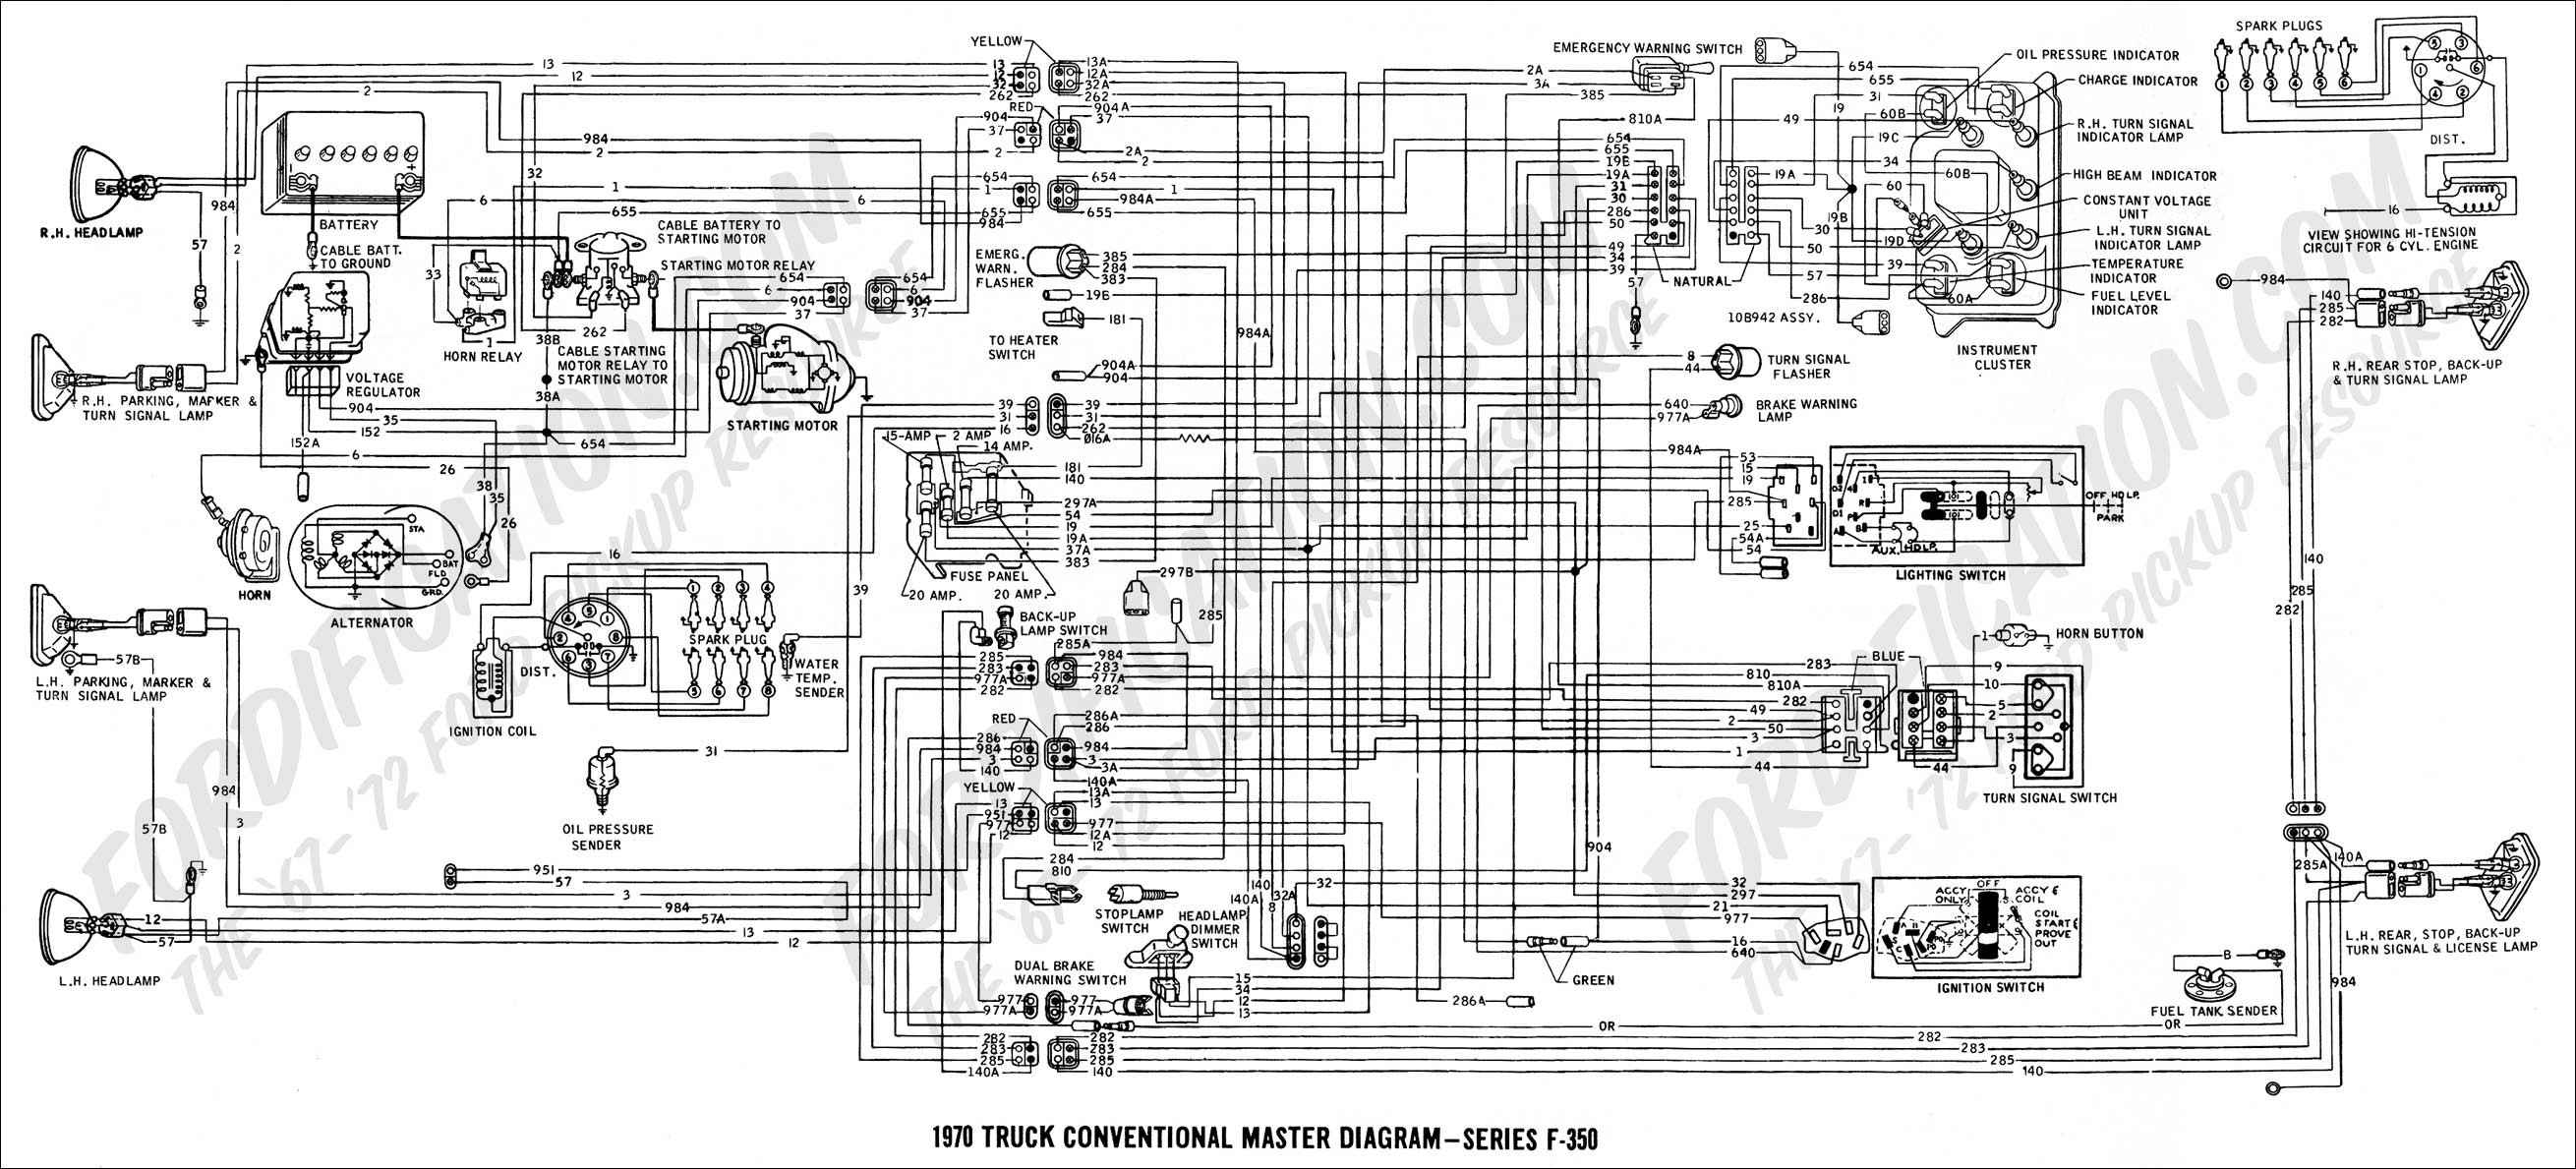 ford trailer wiring diagram Download Ford F250 Trailer Wiring Diagram 6 l DOWNLOAD Wiring Diagram